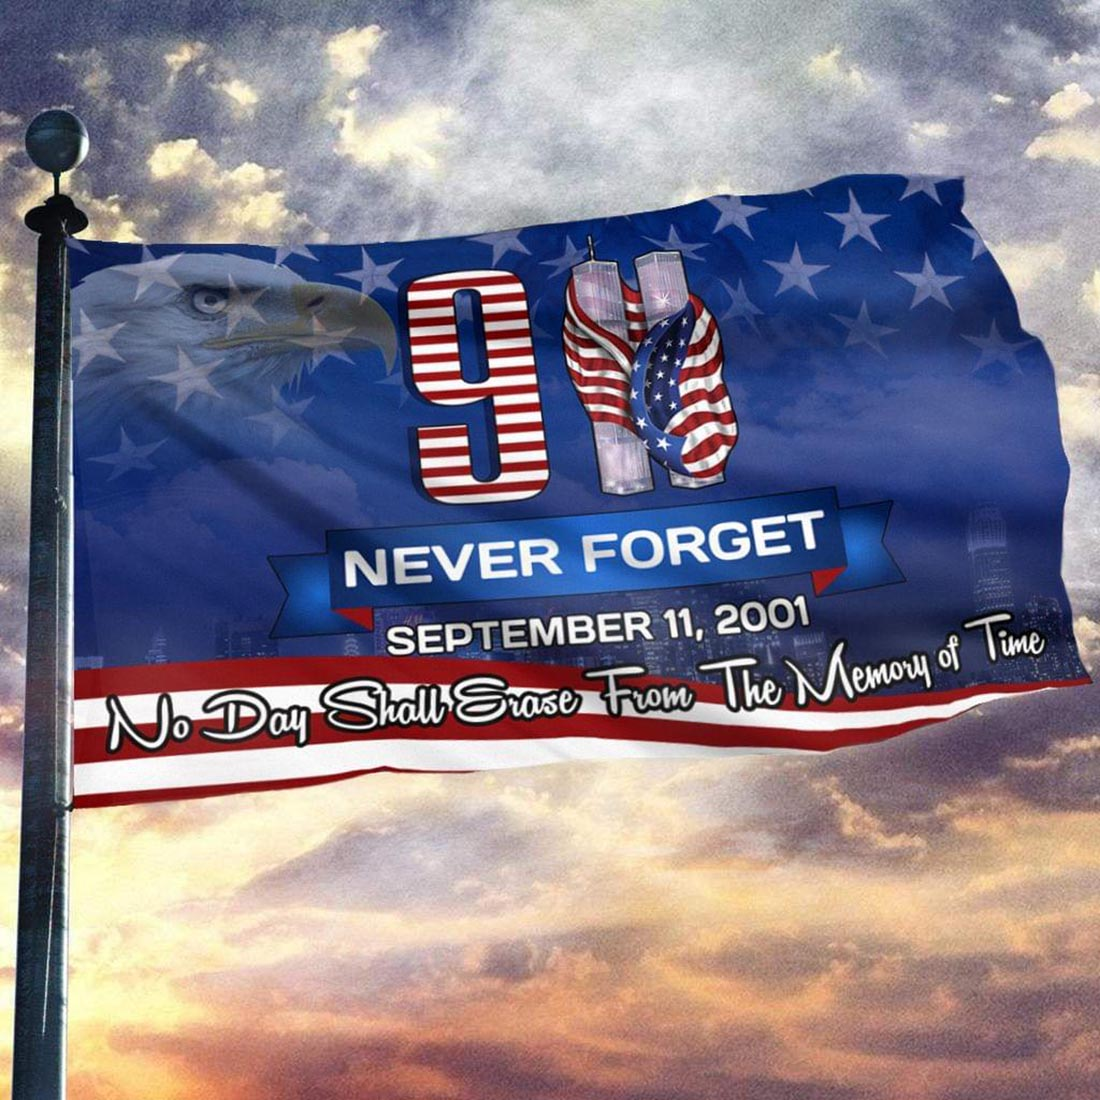 9 11 Never forget No day shall erase from the memory of time flag